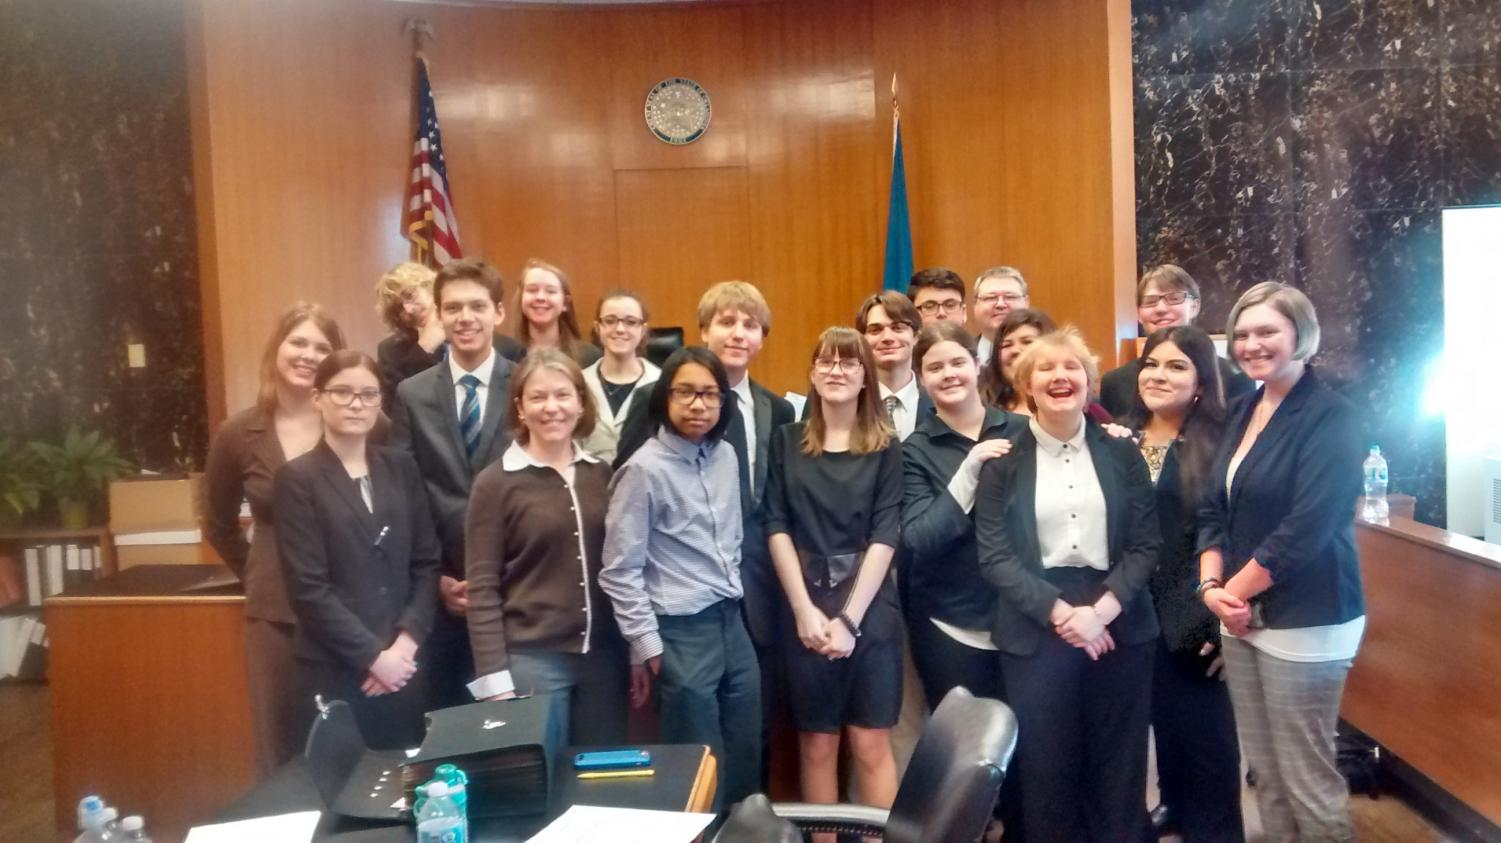 The 2018-2019 Mock Trial team poses for a photo in the courtroom.